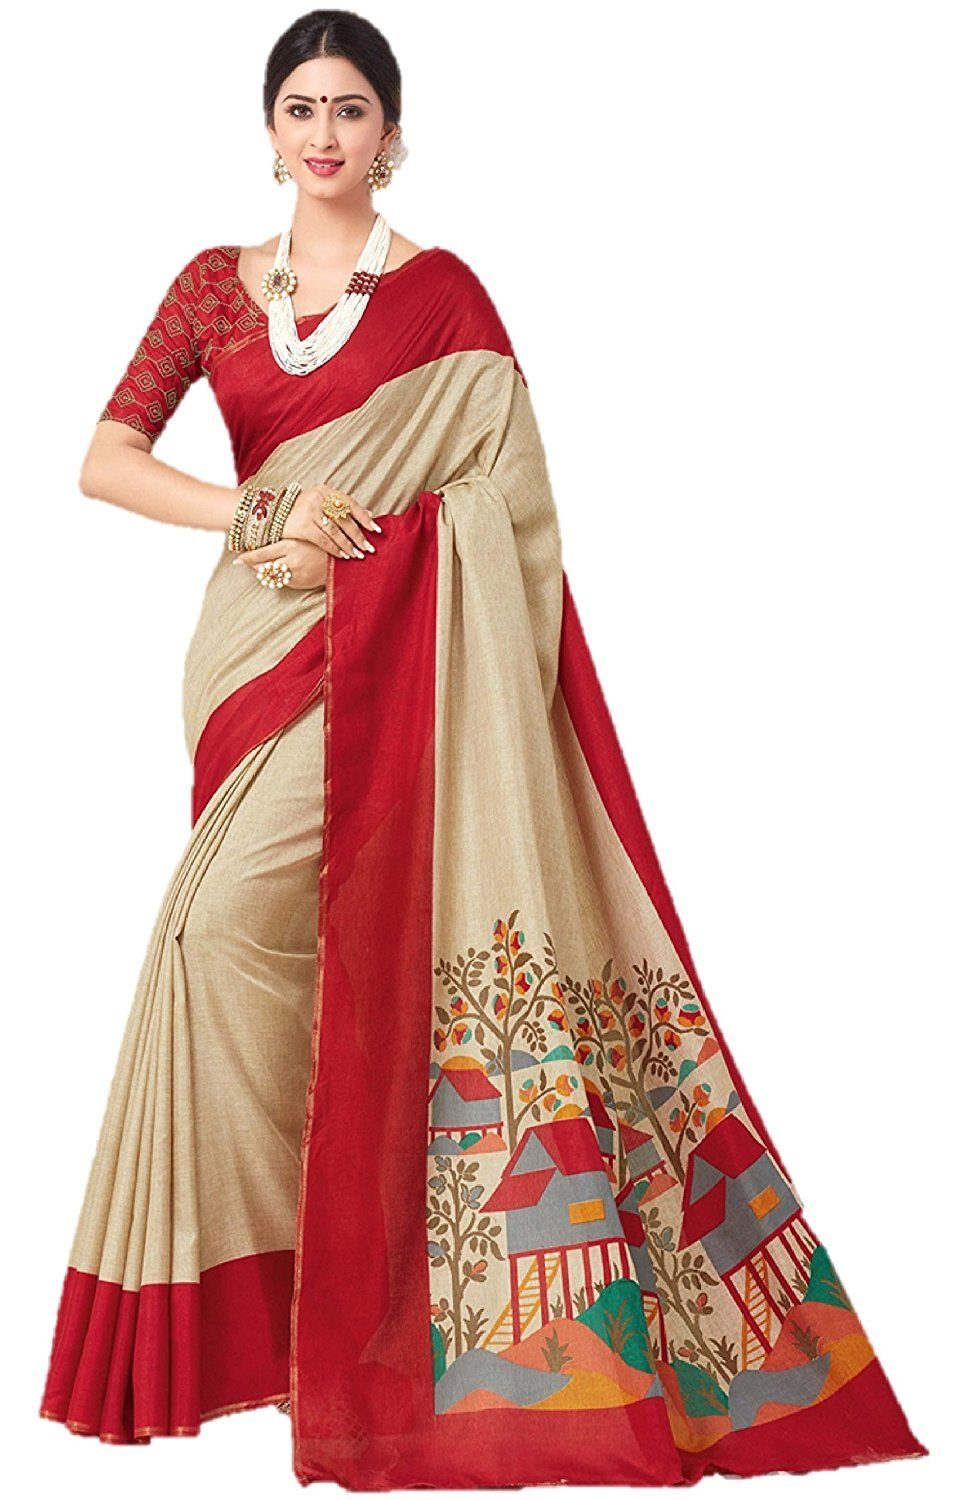 0d74016a070cc8 Miraan Linen Saree (Srh008 Red)  Amazon.in  Clothing   Accessories ...